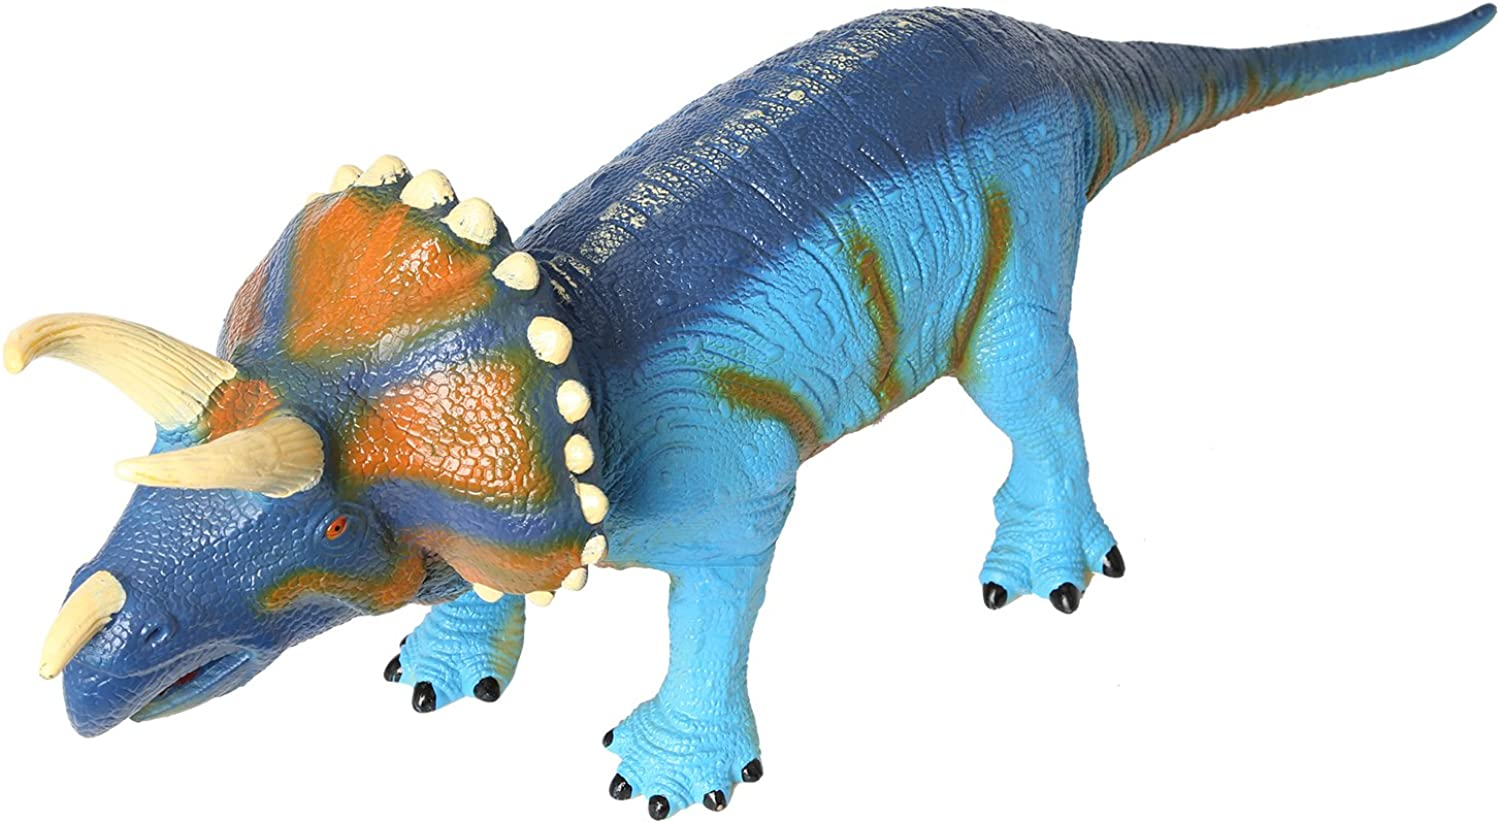 Oversize 28  10  9.5  Large Triceratops Educational Standup Dinosaur Model Action Figures Toy Soft Vinyl Plastic Realistic Dinosaur Toy for Kids (bluee)